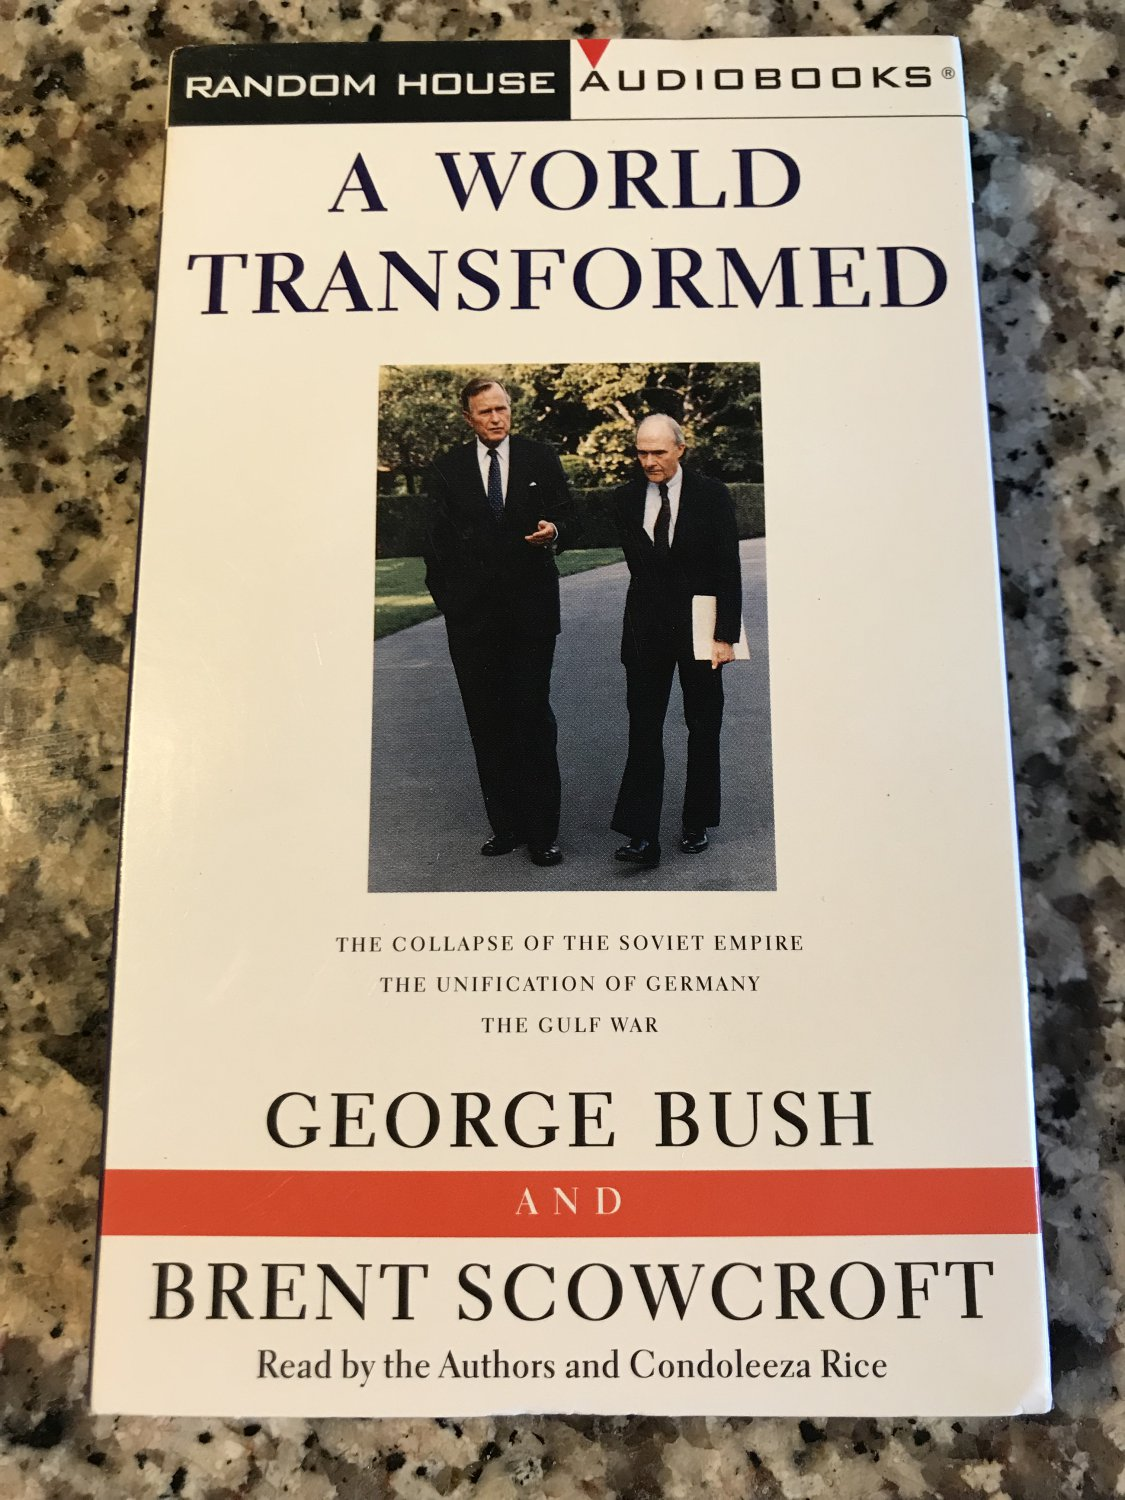 A World Transformed [cassette] Bush, George [Sep 14, 1998]